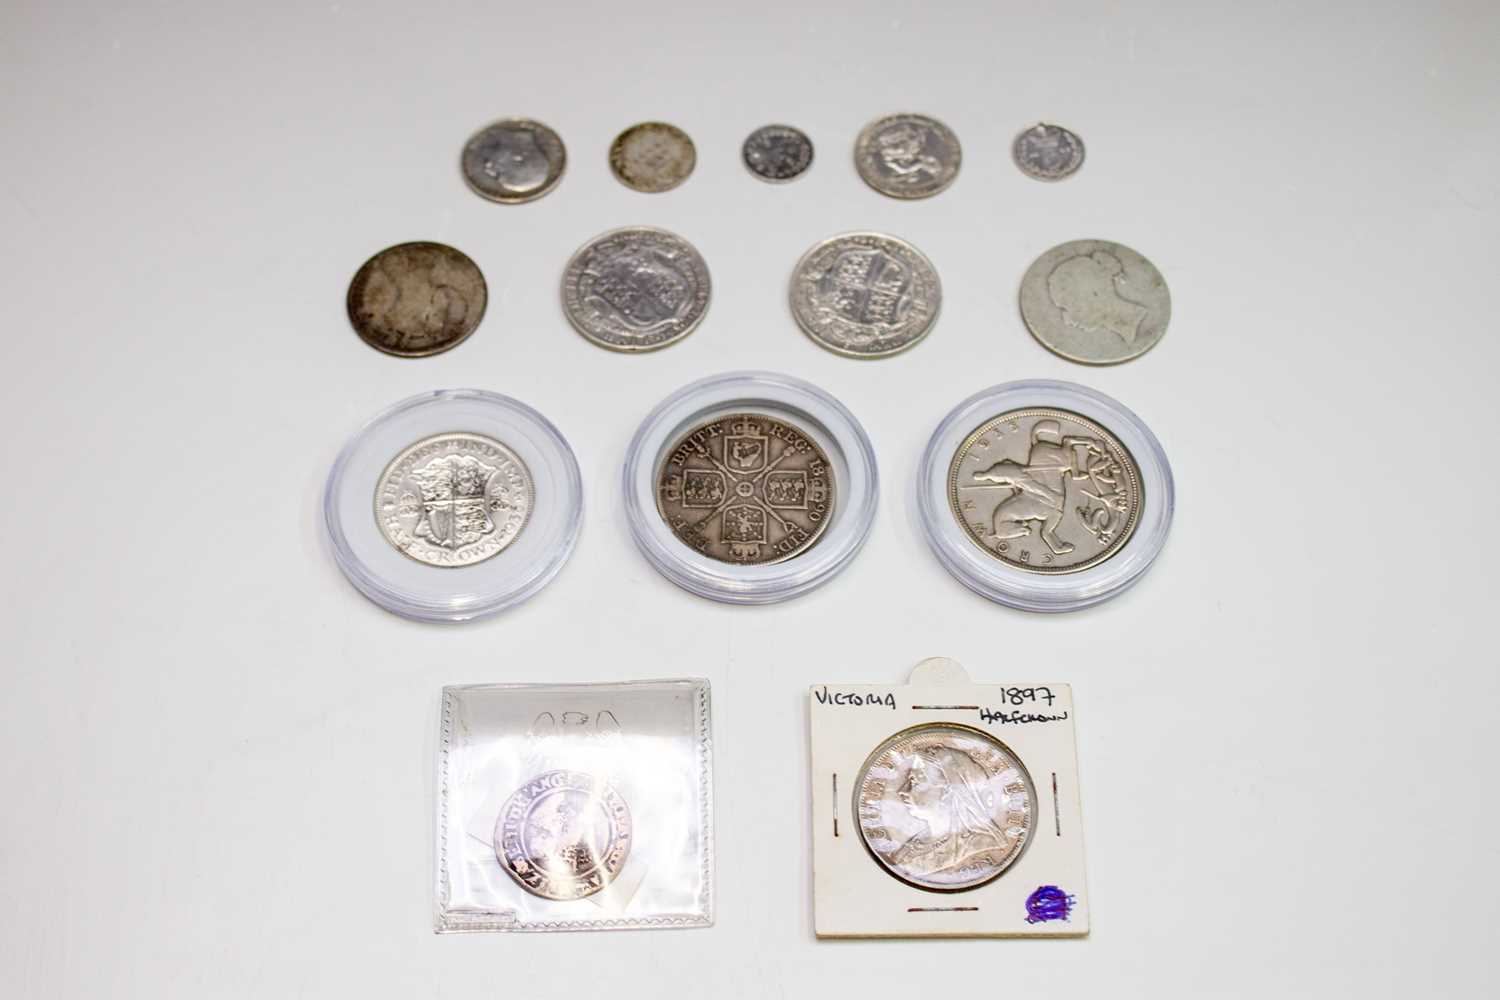 Lot 20 - GB silver coins - 1569 hammered 6d poor, 1897...